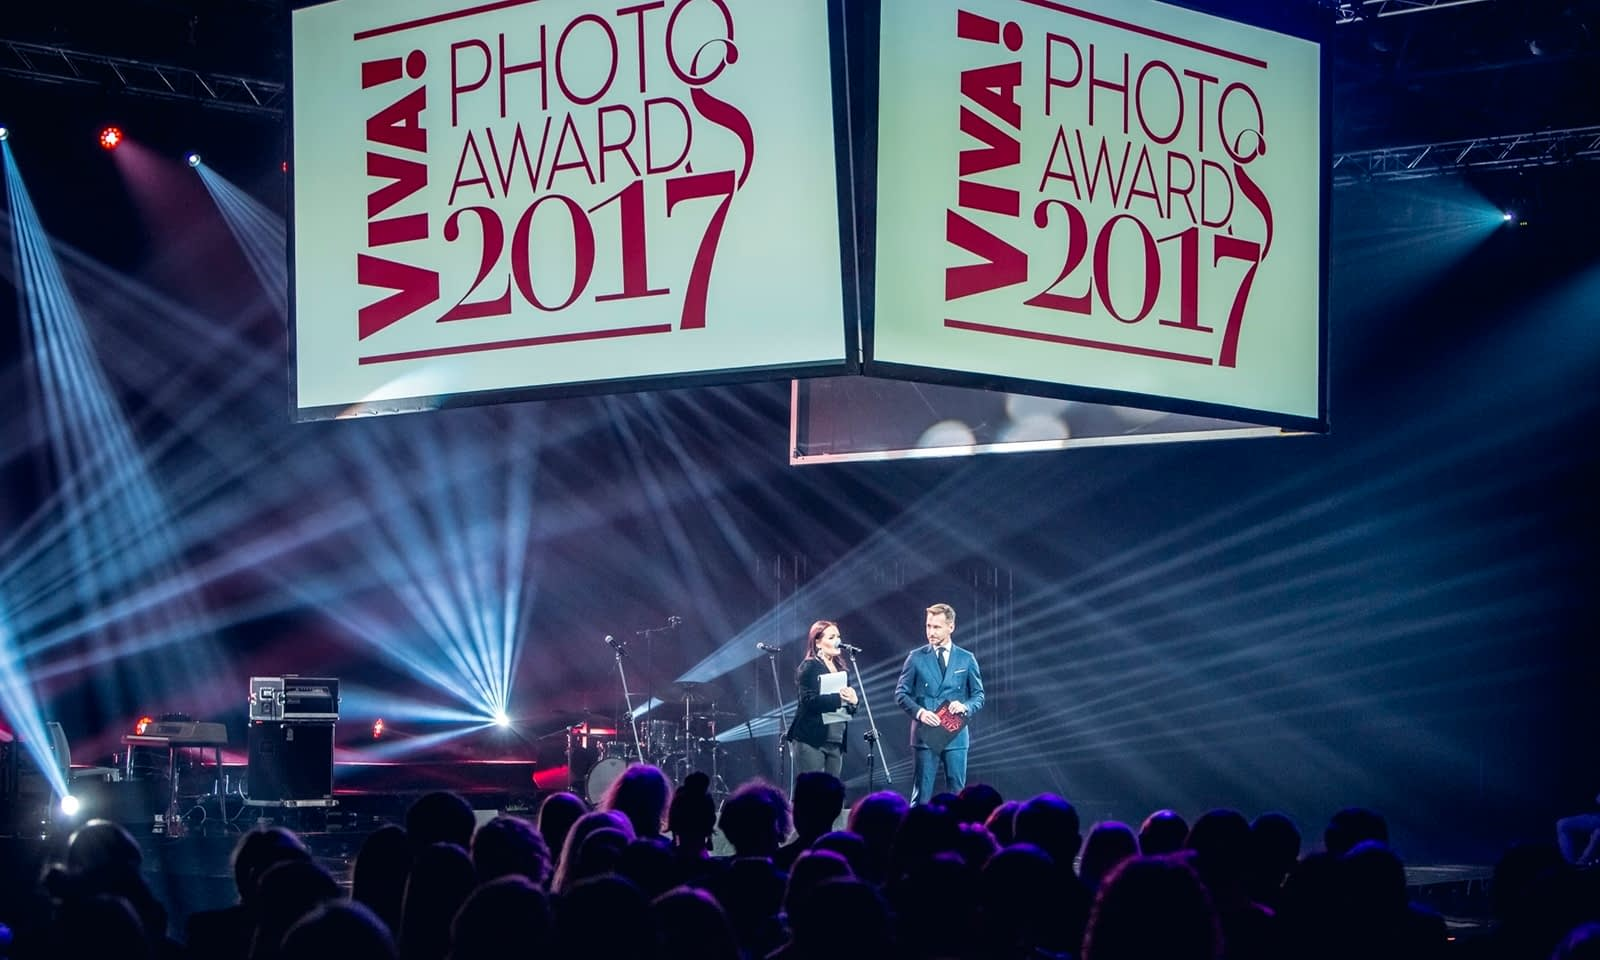 VIVA! Photo Awards 2017 Brill AV Media